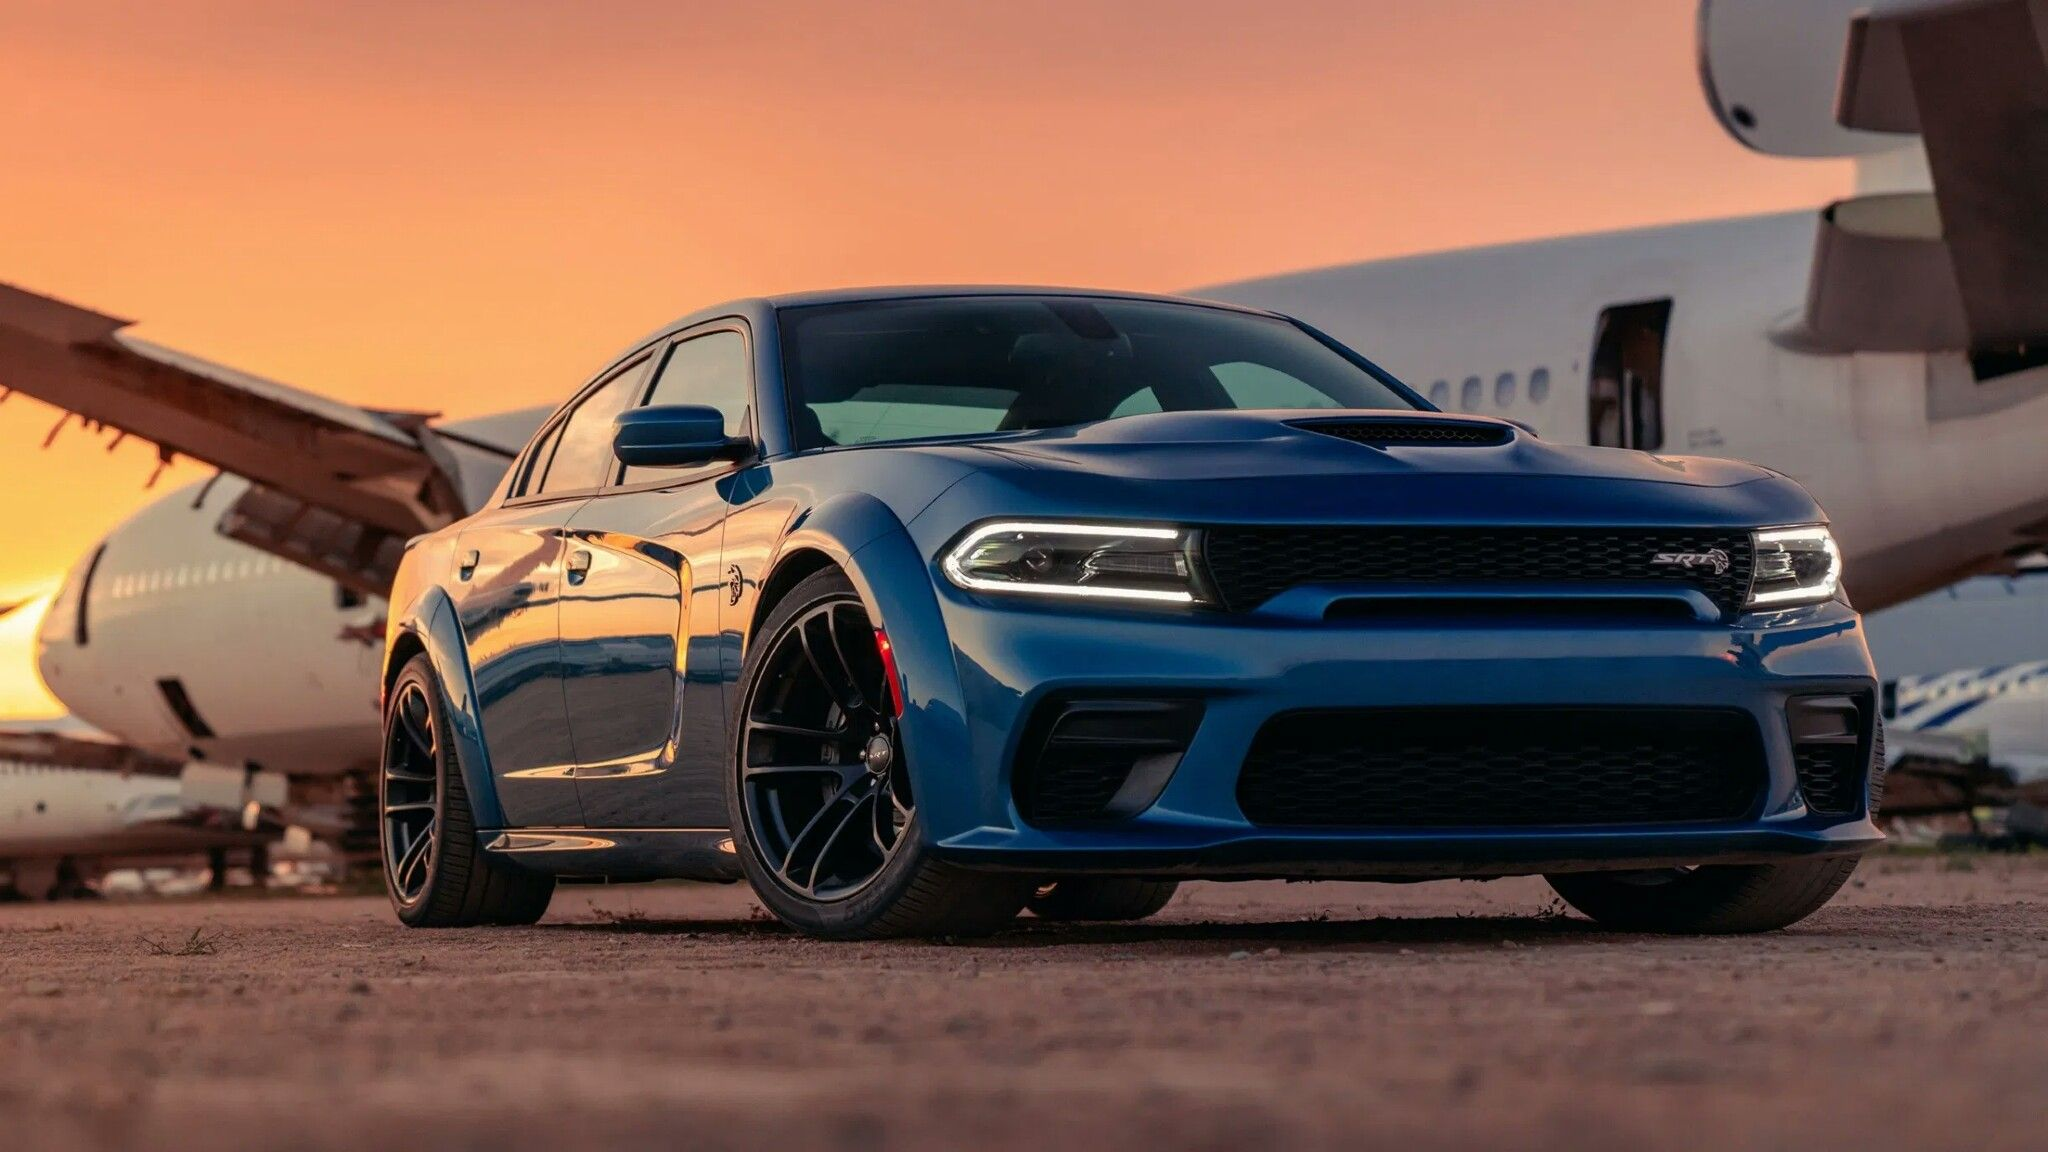 Pin By Slothgod On Vehicles Dodge Charger Srt Charger Srt Hellcat Charger Srt